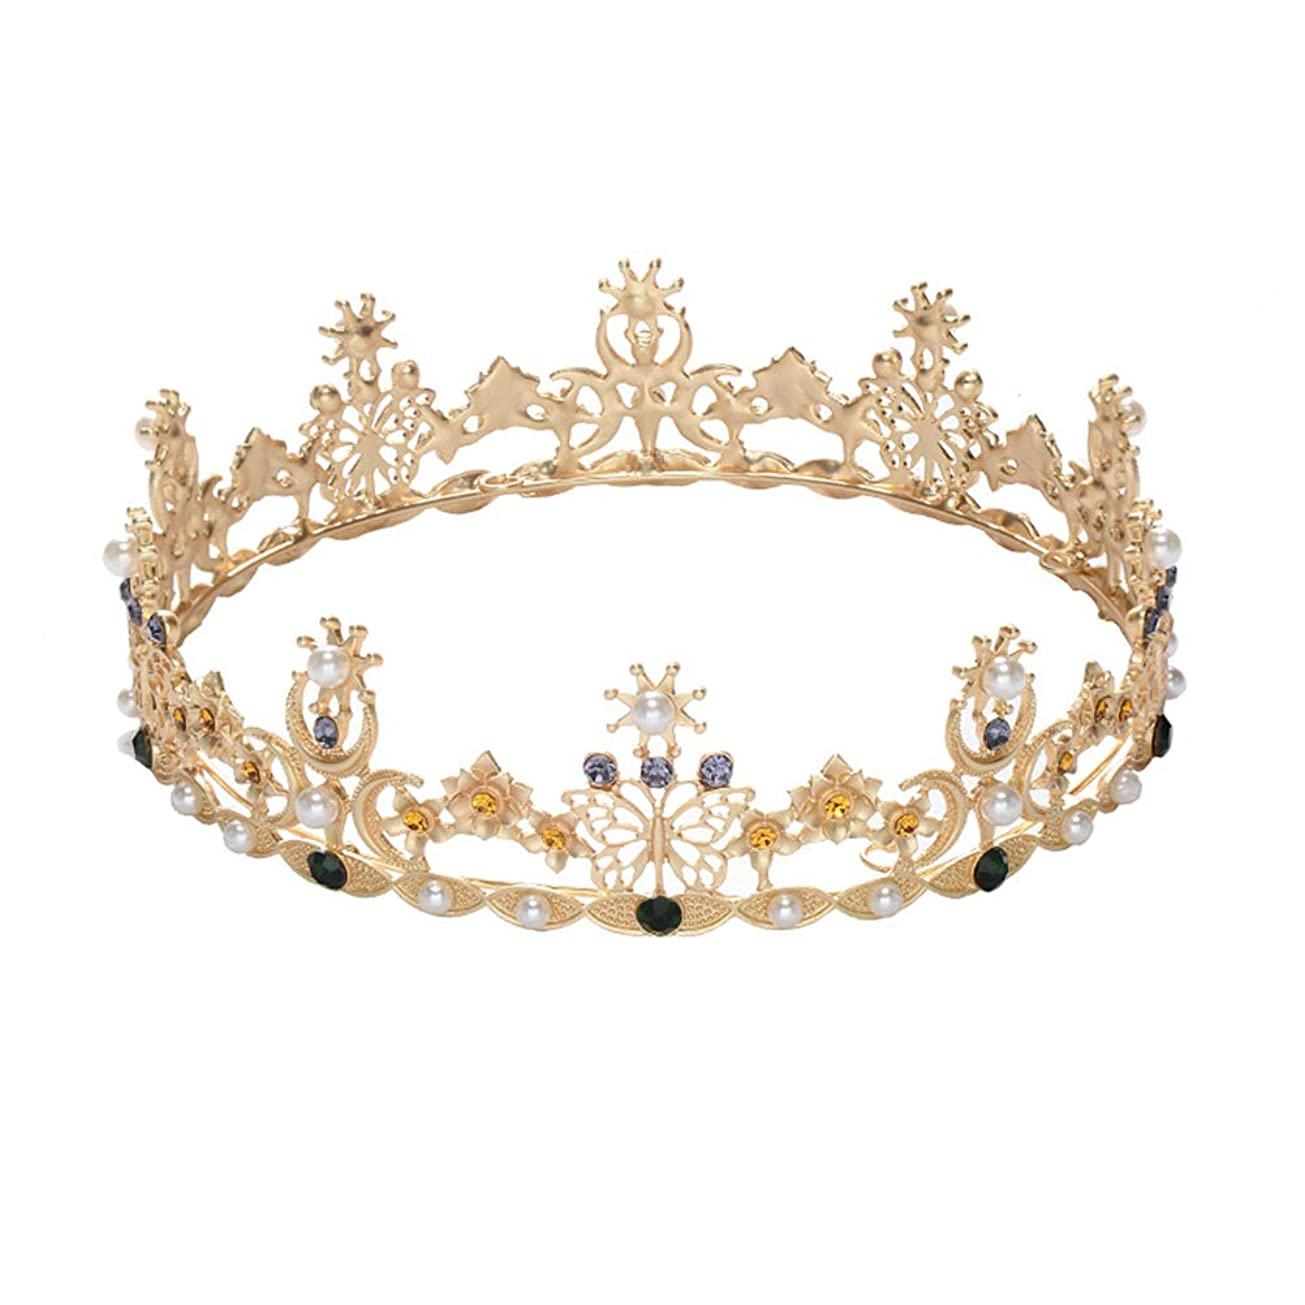 以降本を読む不十分LURROSE Baroque vintage crown rhinestone queen king tiaras for wedding bridal